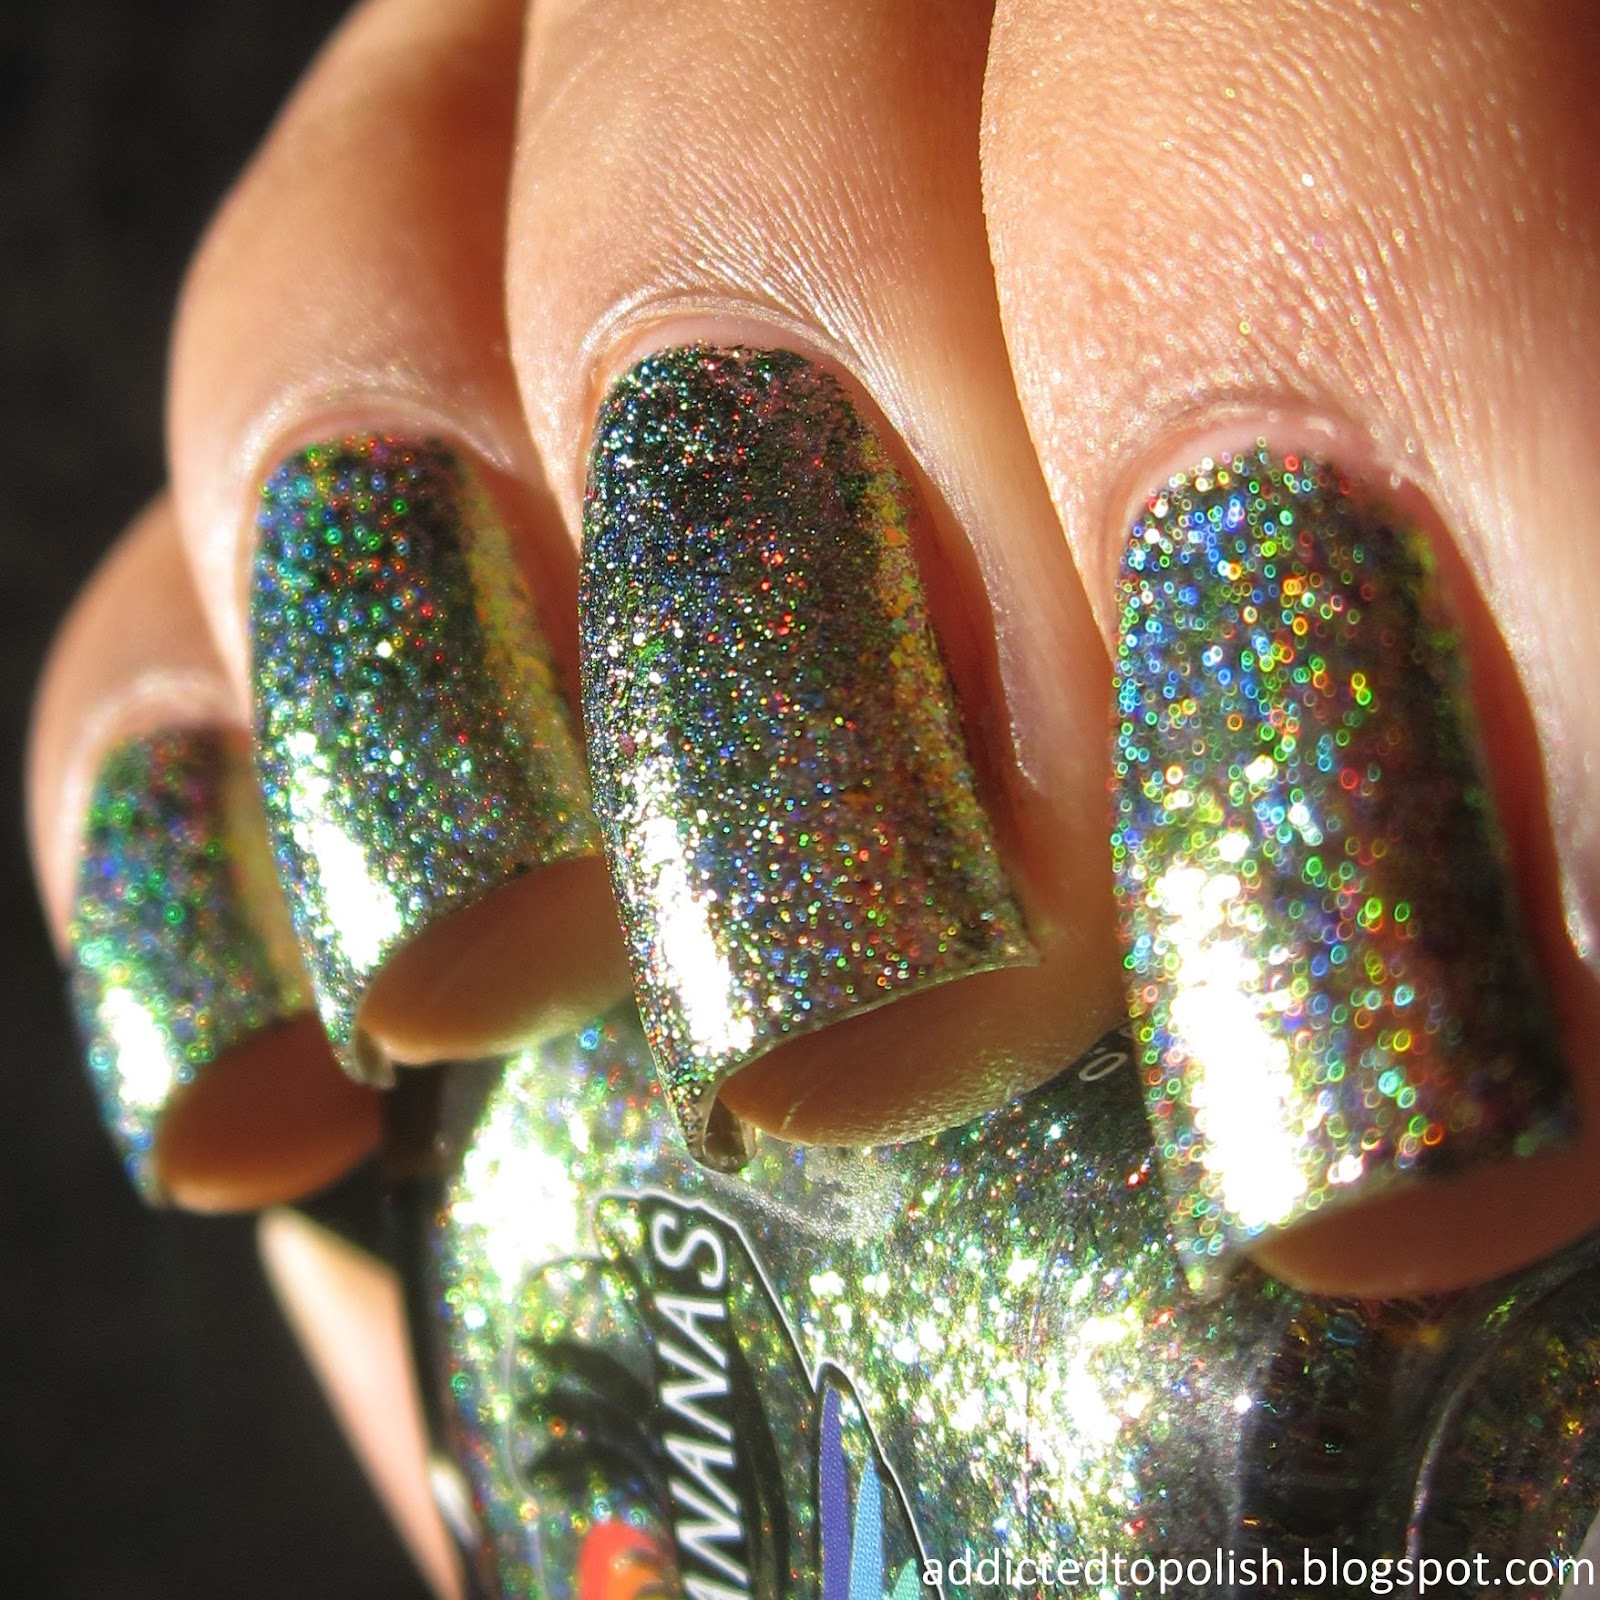 Indigo Bananas Accretion Disk Holo Chrome Flakies